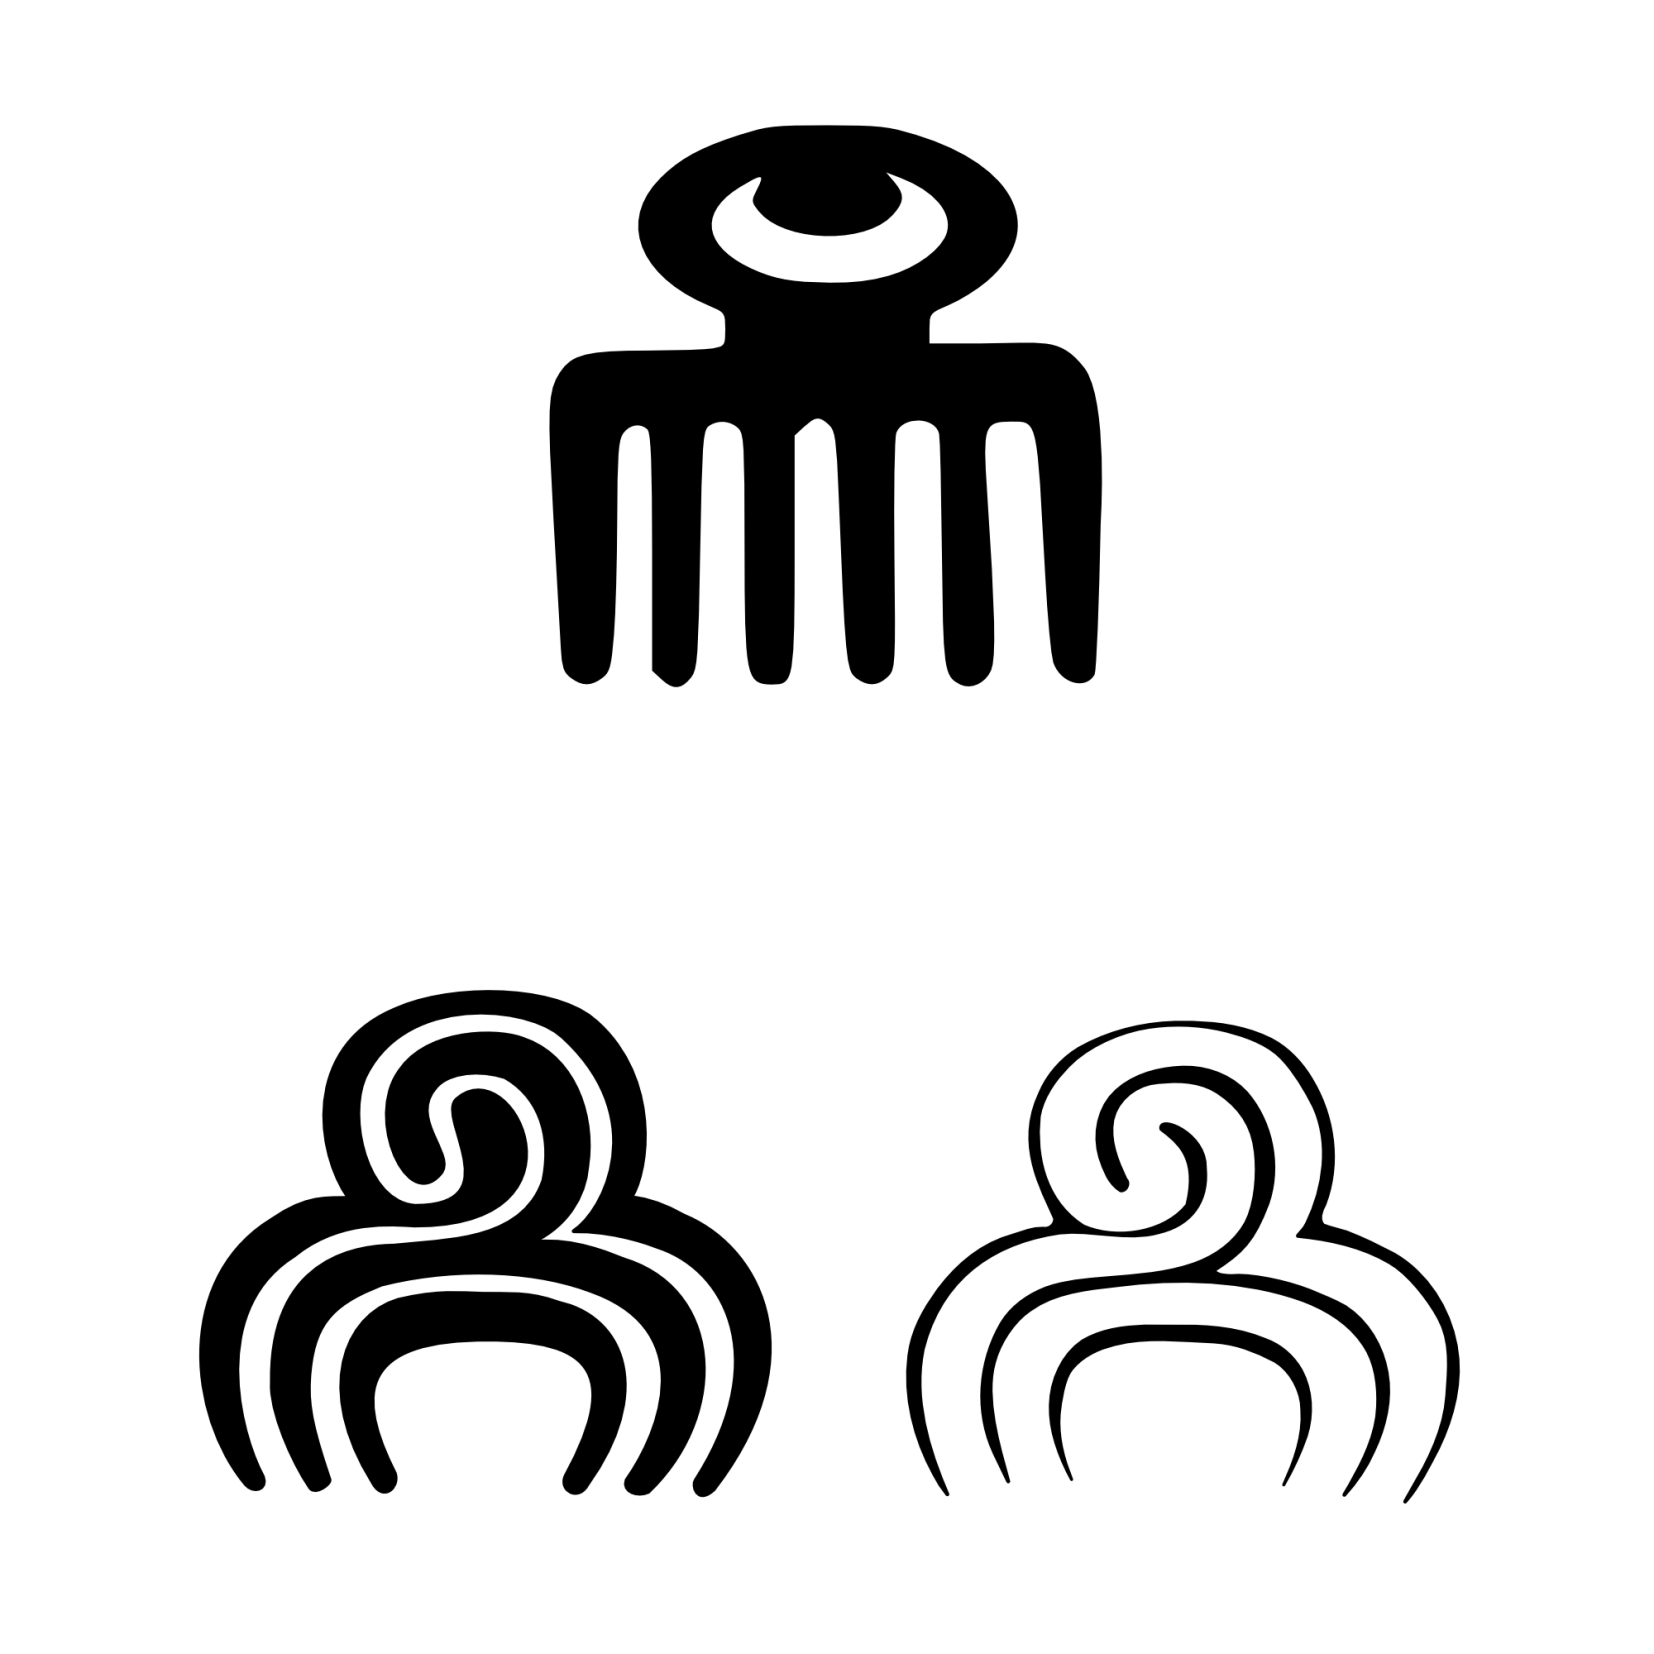 Duafe Adinkra Symbols Come From The Ashanti Tribes Of